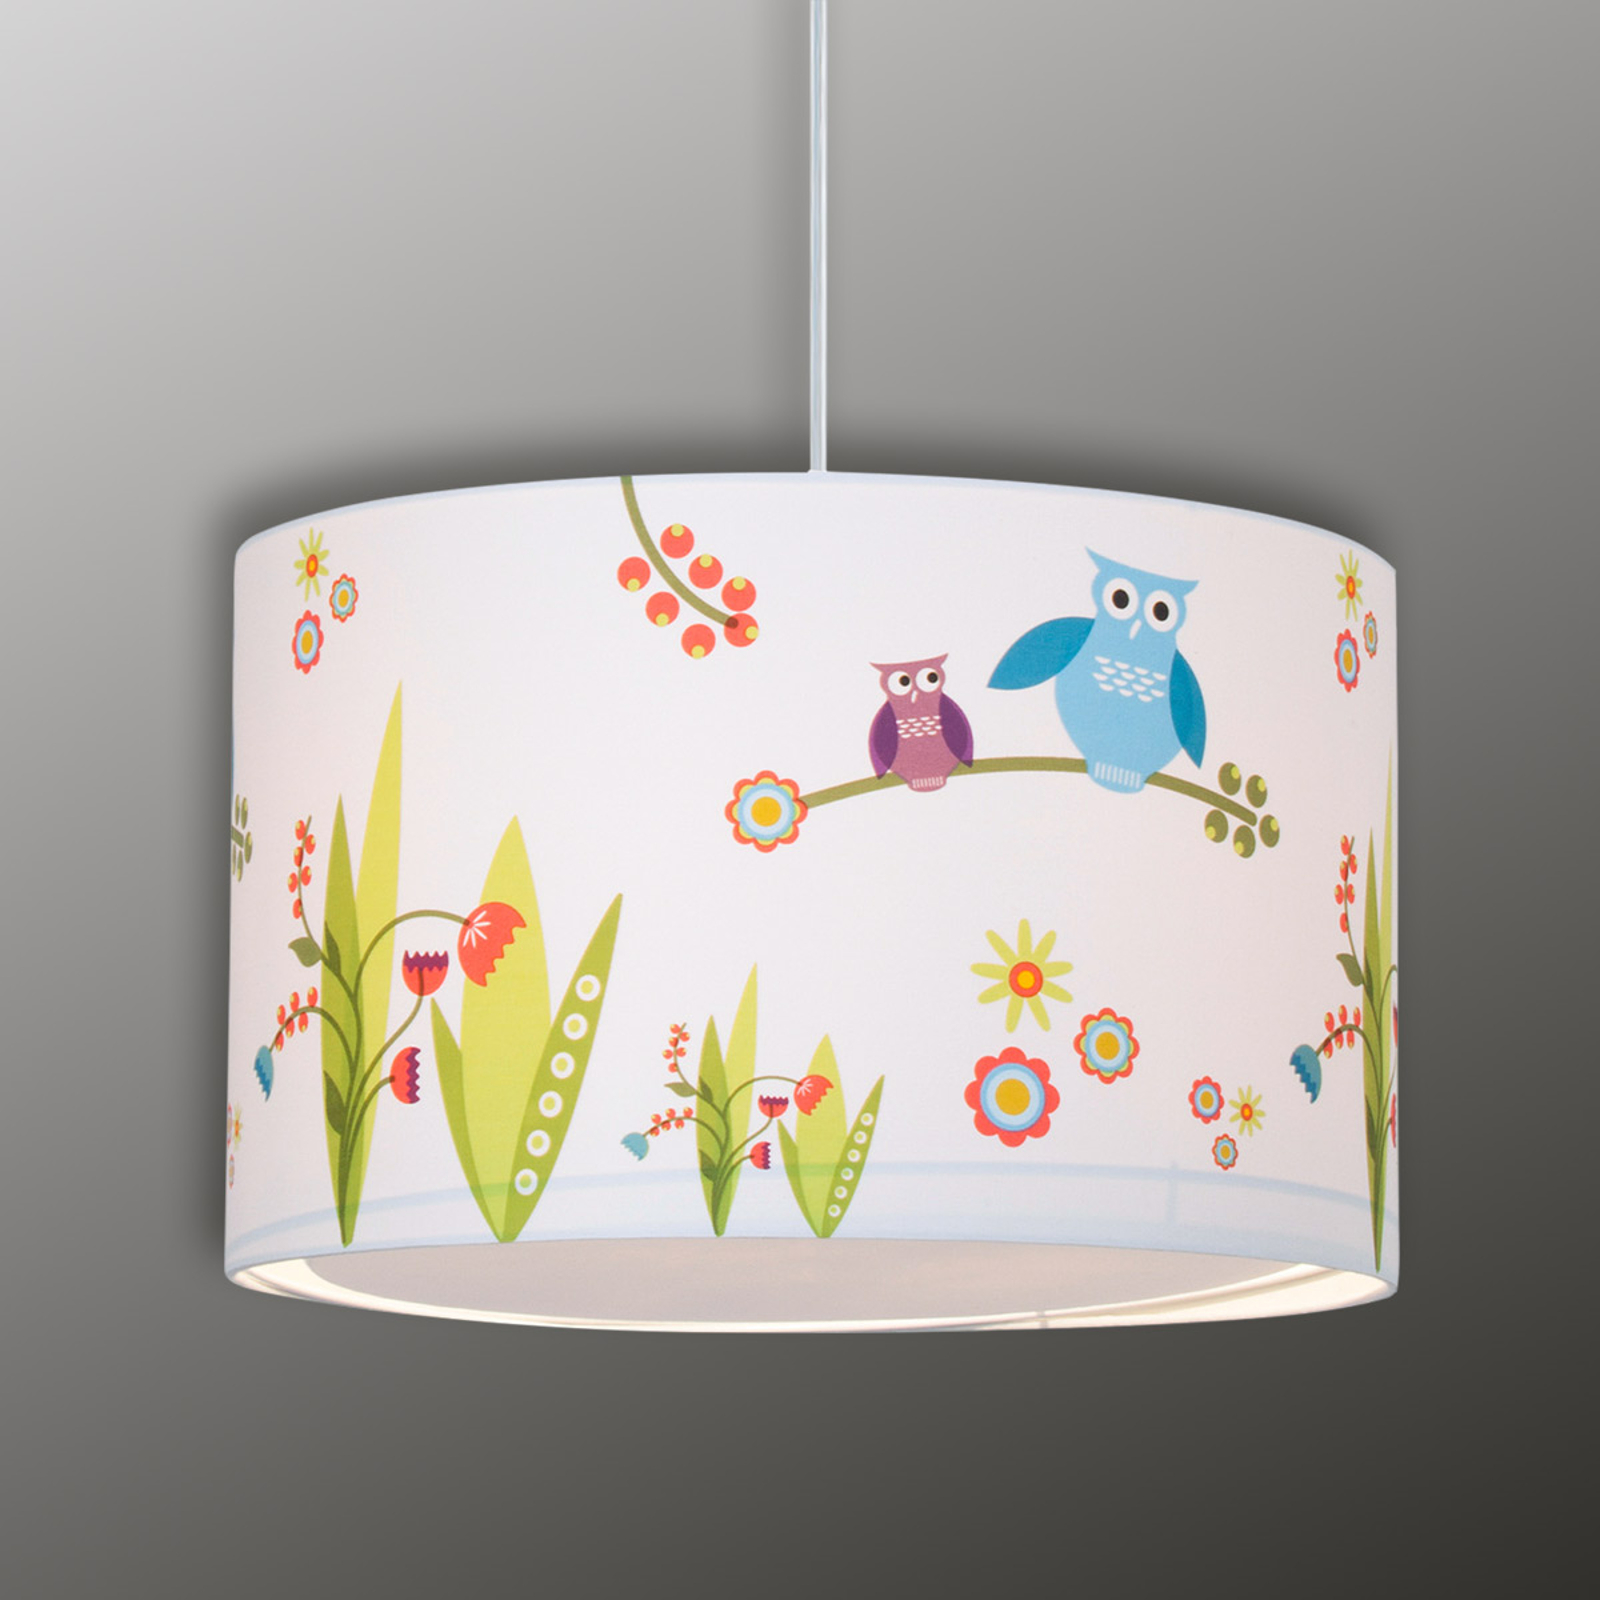 Birds cheerful children's hanging light_1507230_1